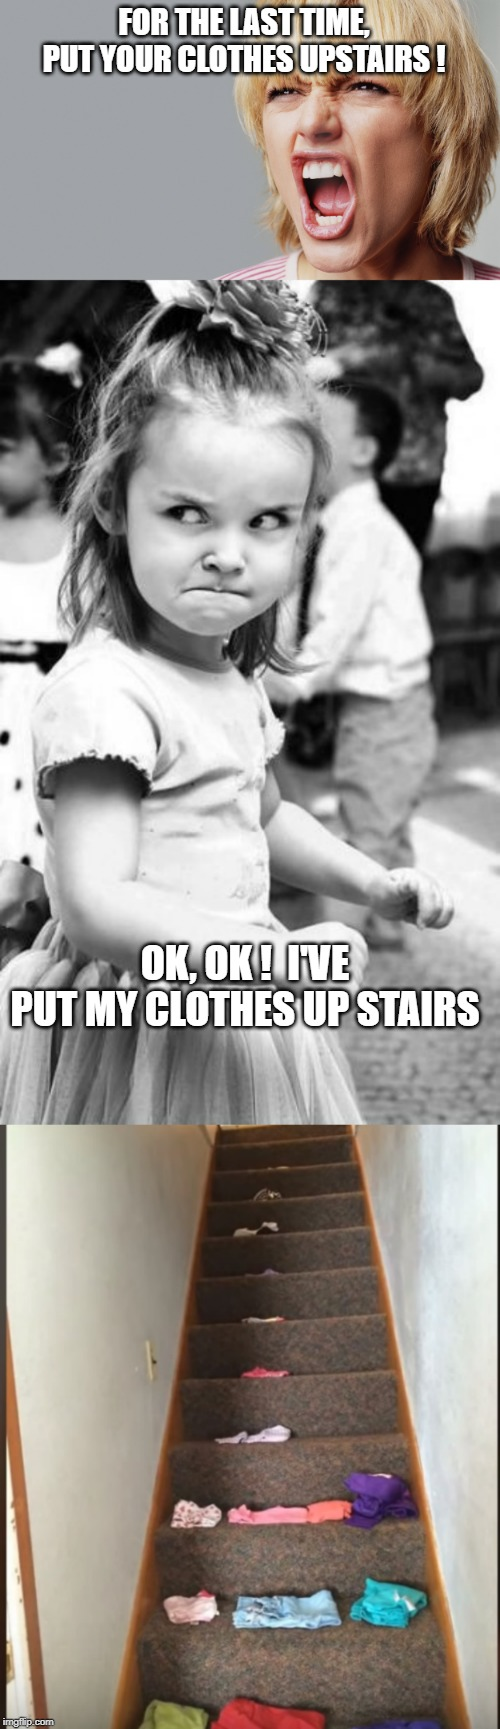 only doing as I was told ! | FOR THE LAST TIME, PUT YOUR CLOTHES UPSTAIRS ! OK, OK !  I'VE PUT MY CLOTHES UP STAIRS | image tagged in memes,angry toddler,angry woman yelling,clothes,stairs | made w/ Imgflip meme maker